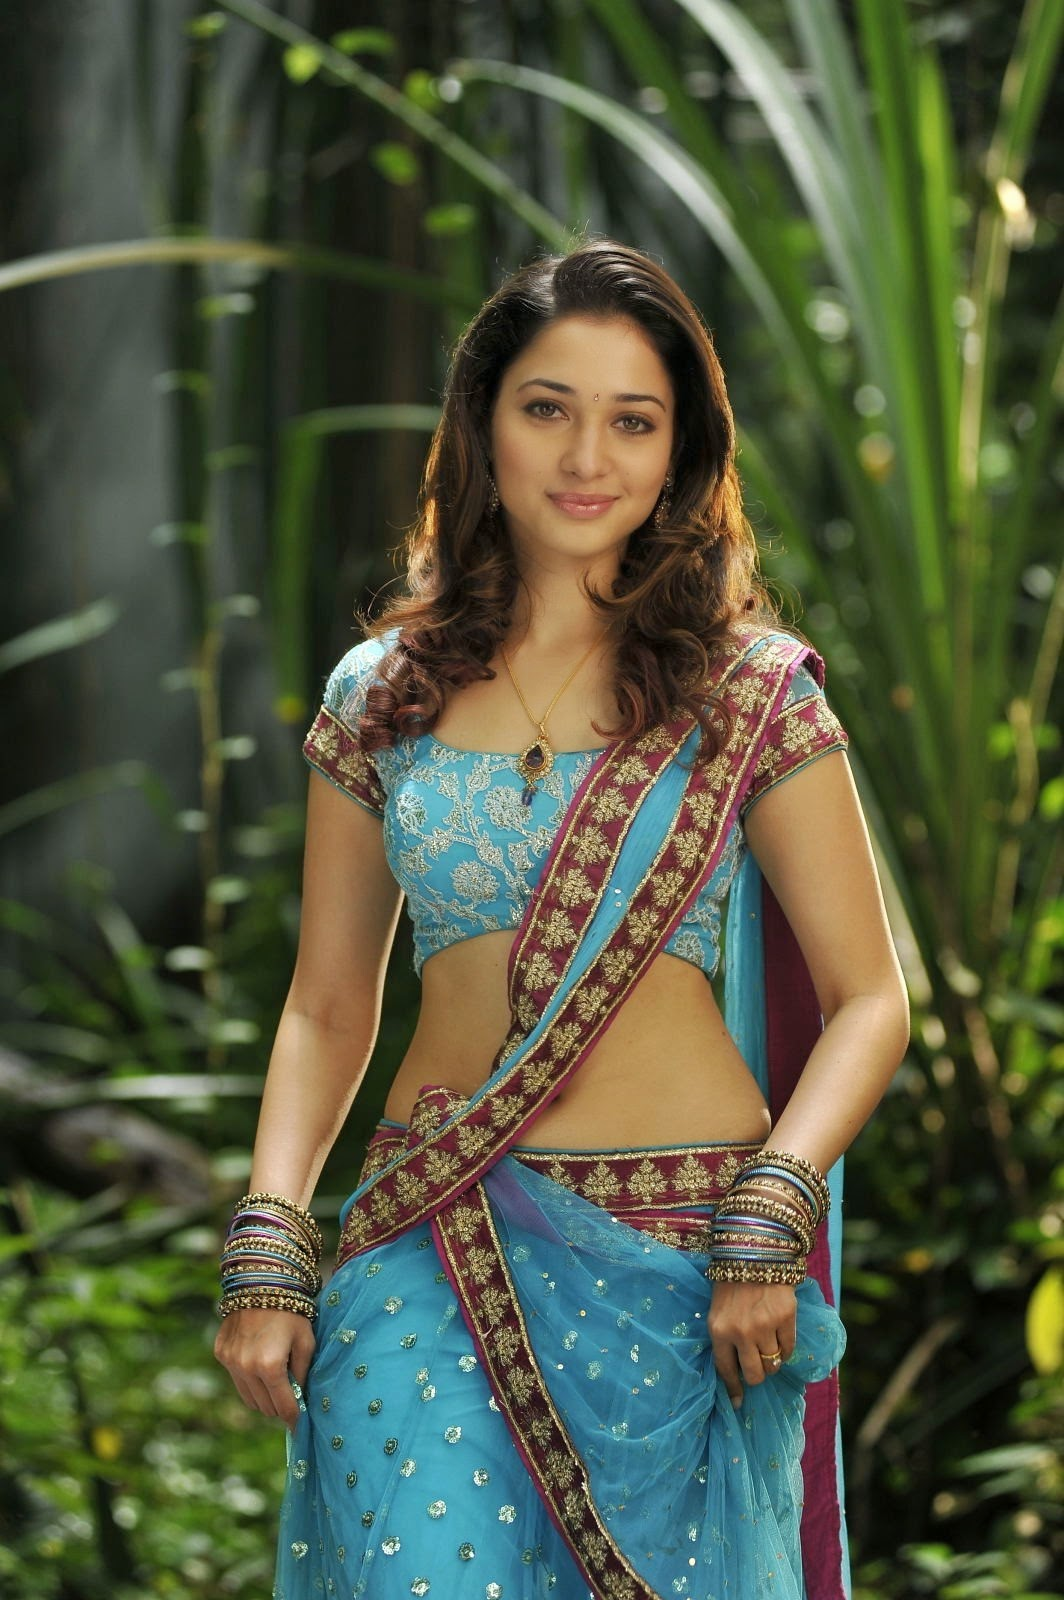 Bollywood Actress In Saree Hd Wallpapers Full Hd Photo Heroin 217526 Hd Wallpaper Backgrounds Download